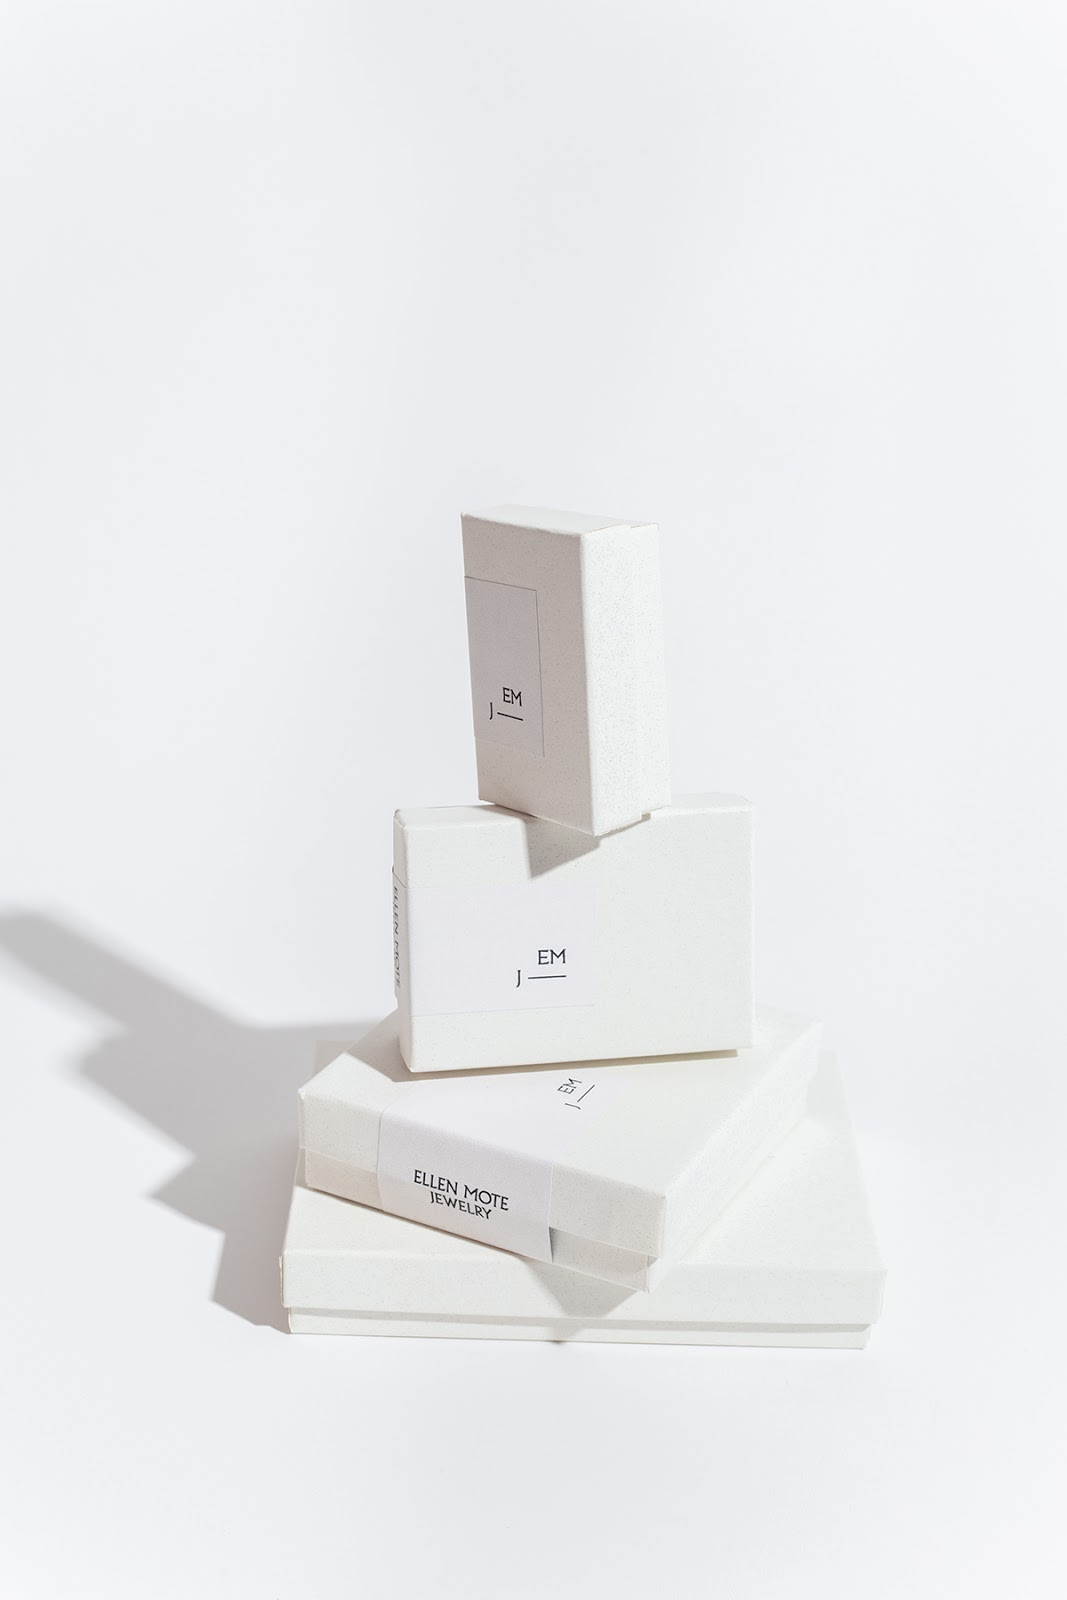 Example of smaller rigid packaging box